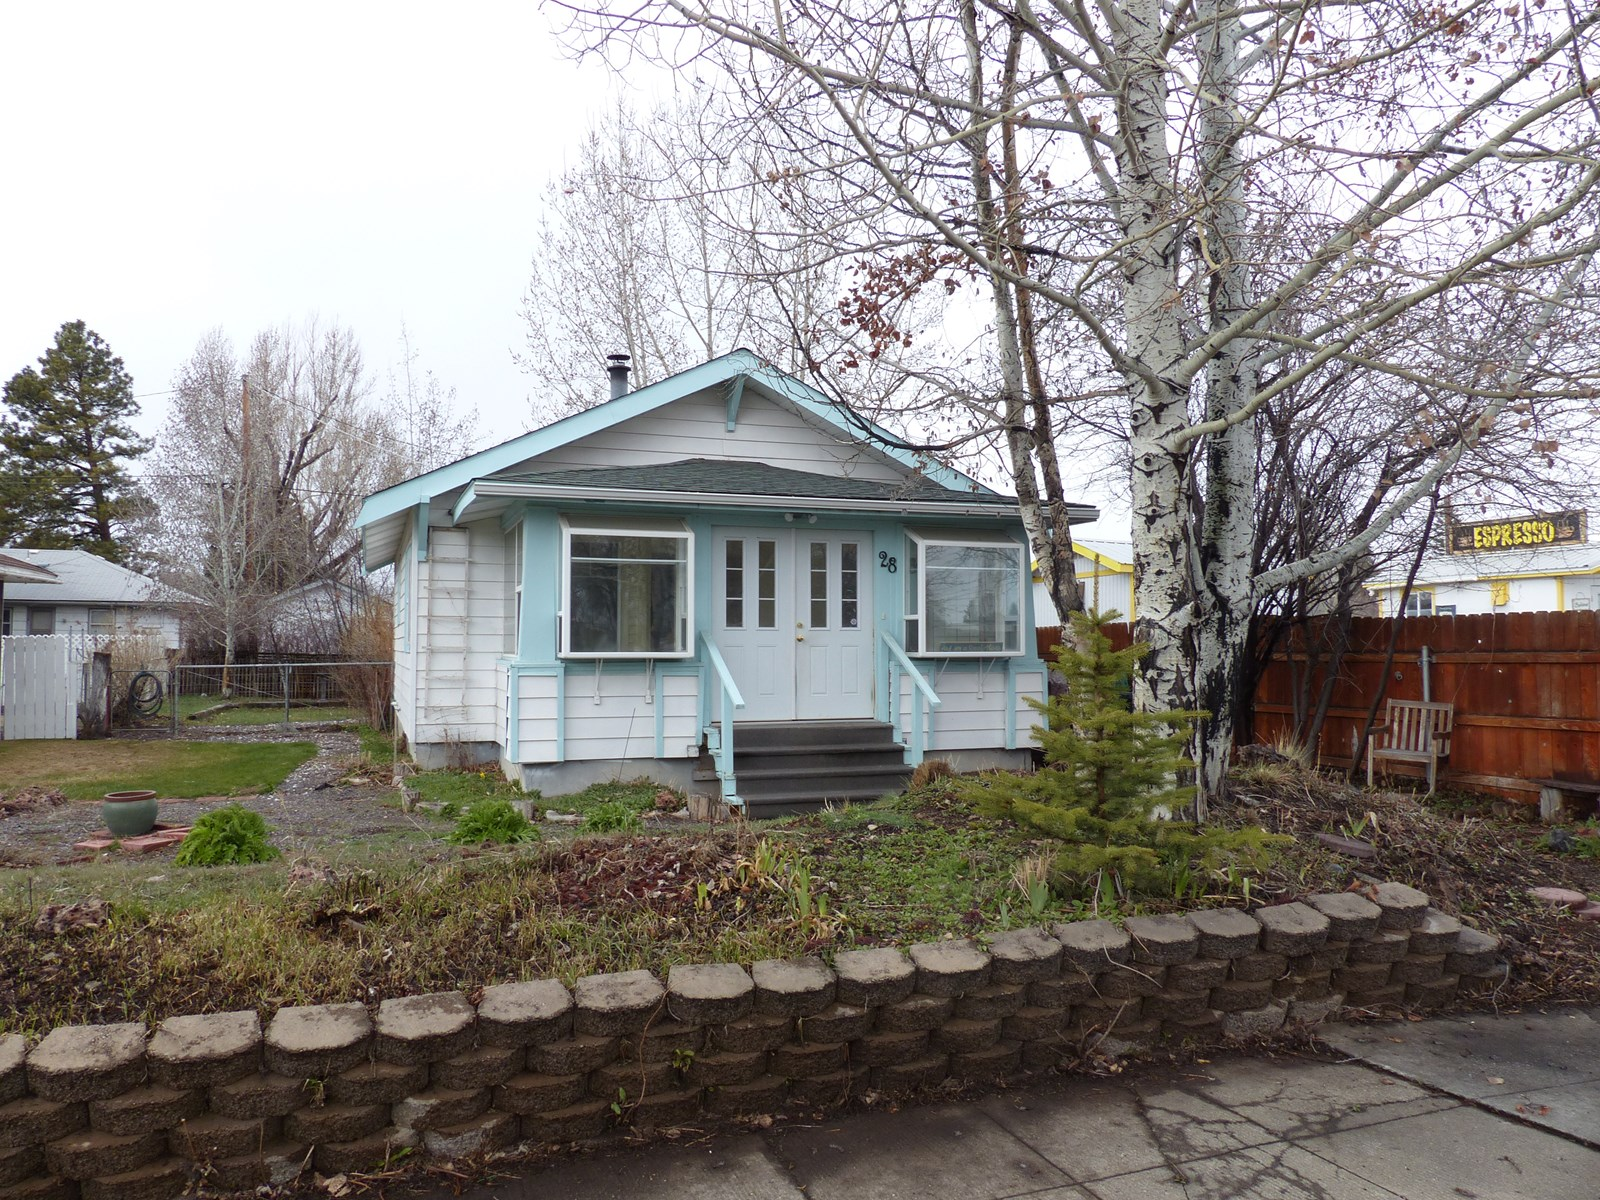 BUNGALOW FOR SALE IN BURNS OREGON - LOADS OF CHARM!